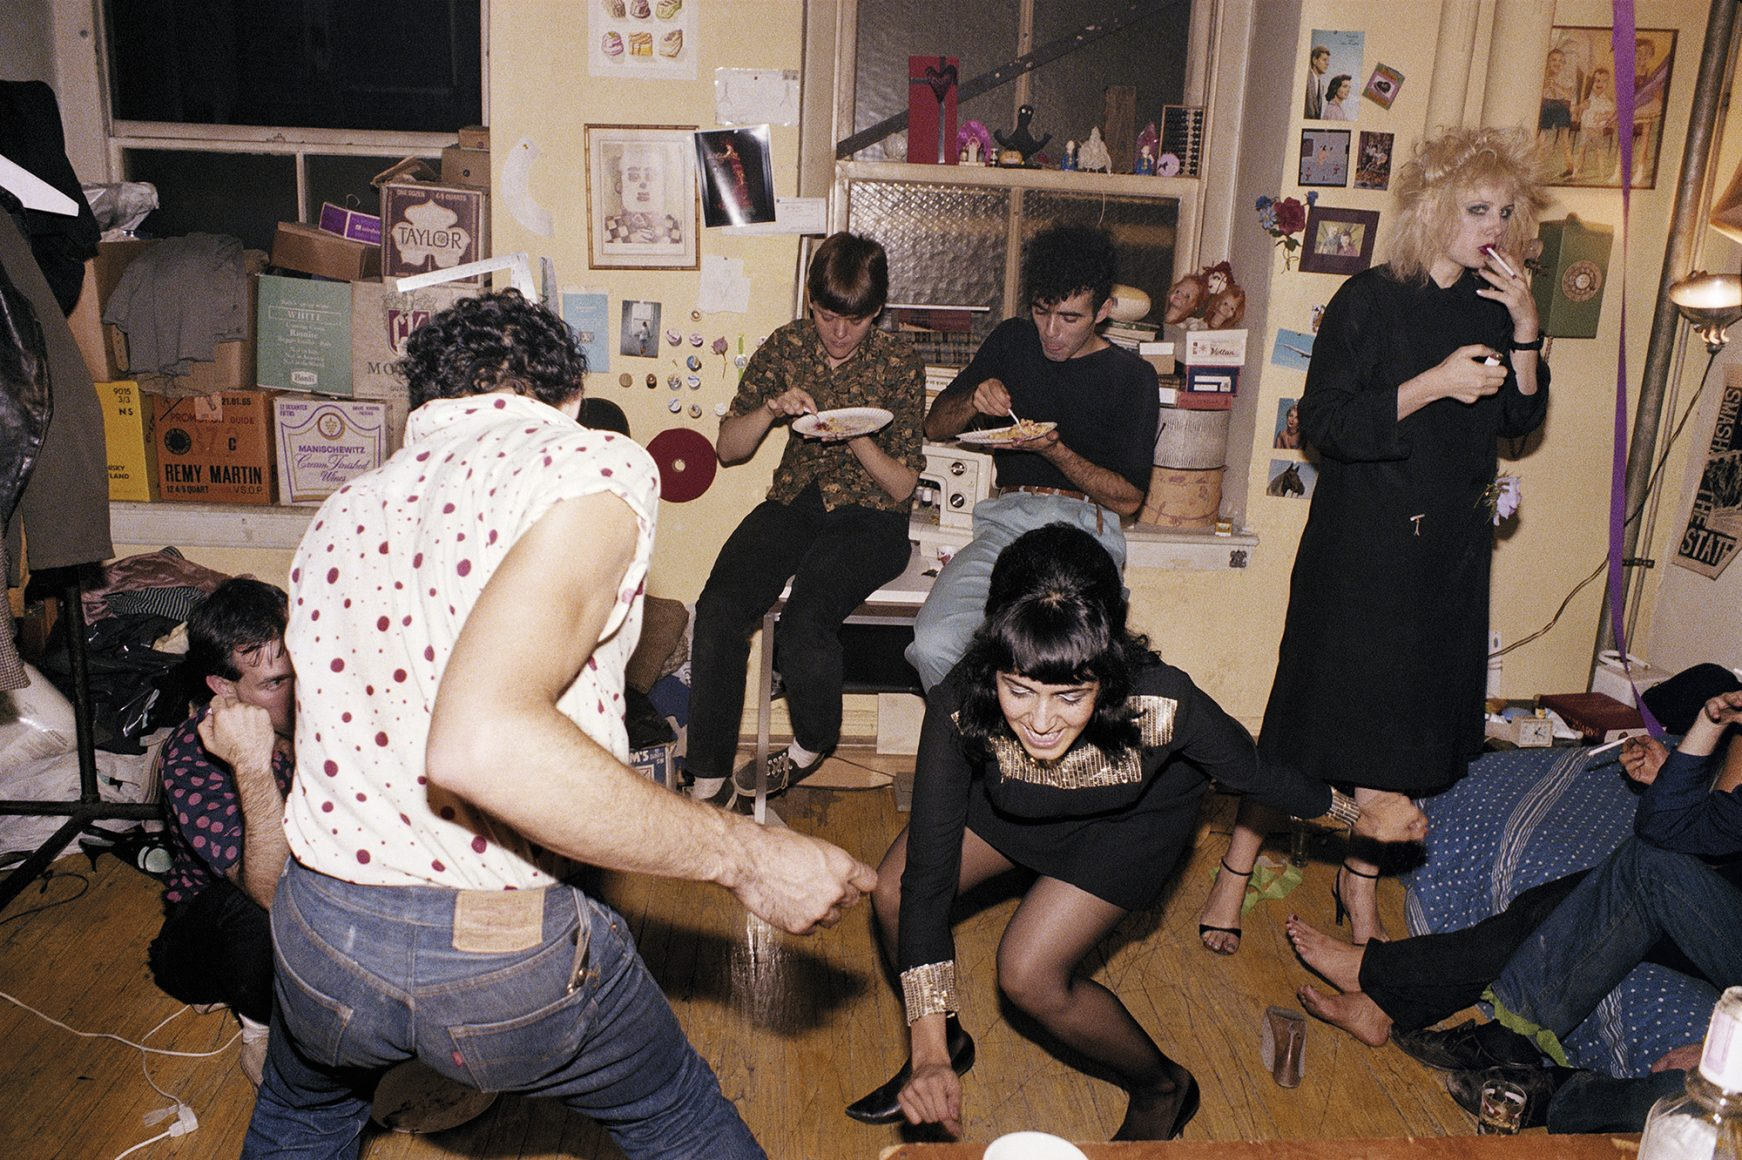 Twisting at my birthday party, NYC, 1980